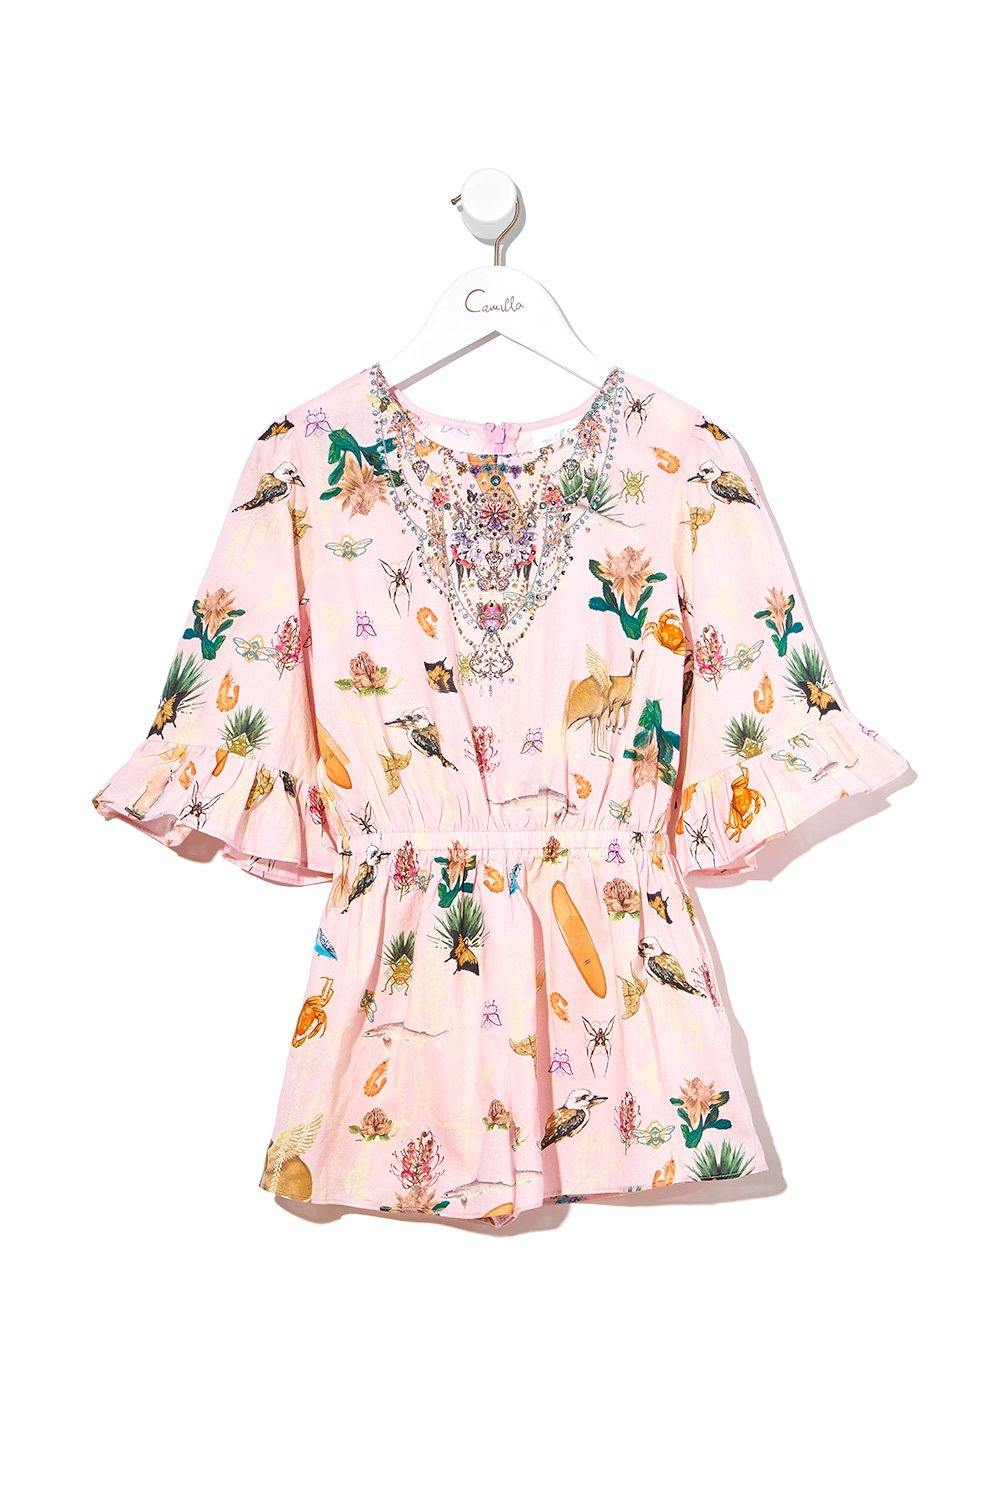 Over The Rainbow Kids Playsuit with Frill Sleeve GIRLS CLOTHING CAMILLA